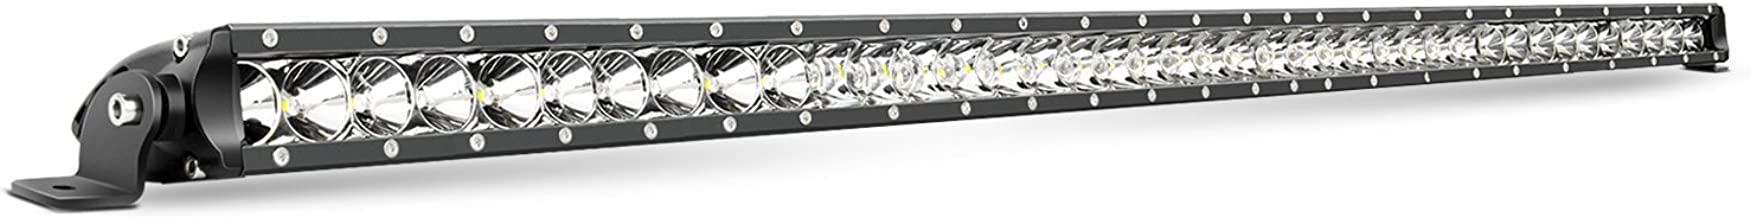 Nilight LED Light Bar 41inch 200W Spot Flood Combo Single Row 19000LM Off Road 3D Fog Driving Light Roof Bumper Light Bars for Jeep Ford Trucks Boat, 2 Years Warranty